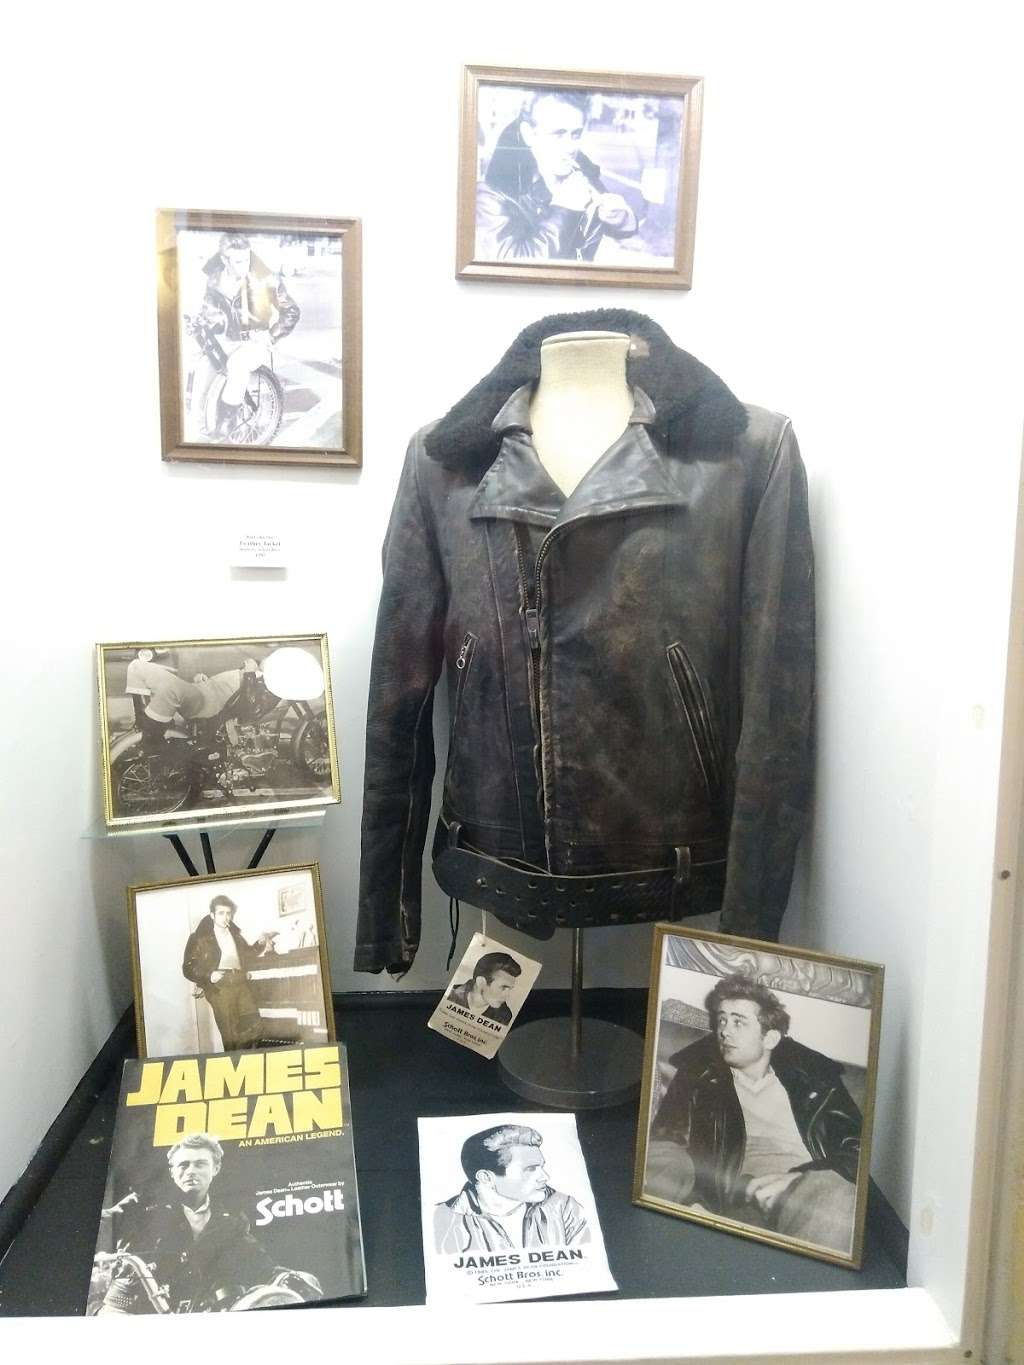 James Dean Gallery - museum  | Photo 3 of 9 | Address: 425 N Main St, Fairmount, IN 46928, USA | Phone: (765) 948-3326